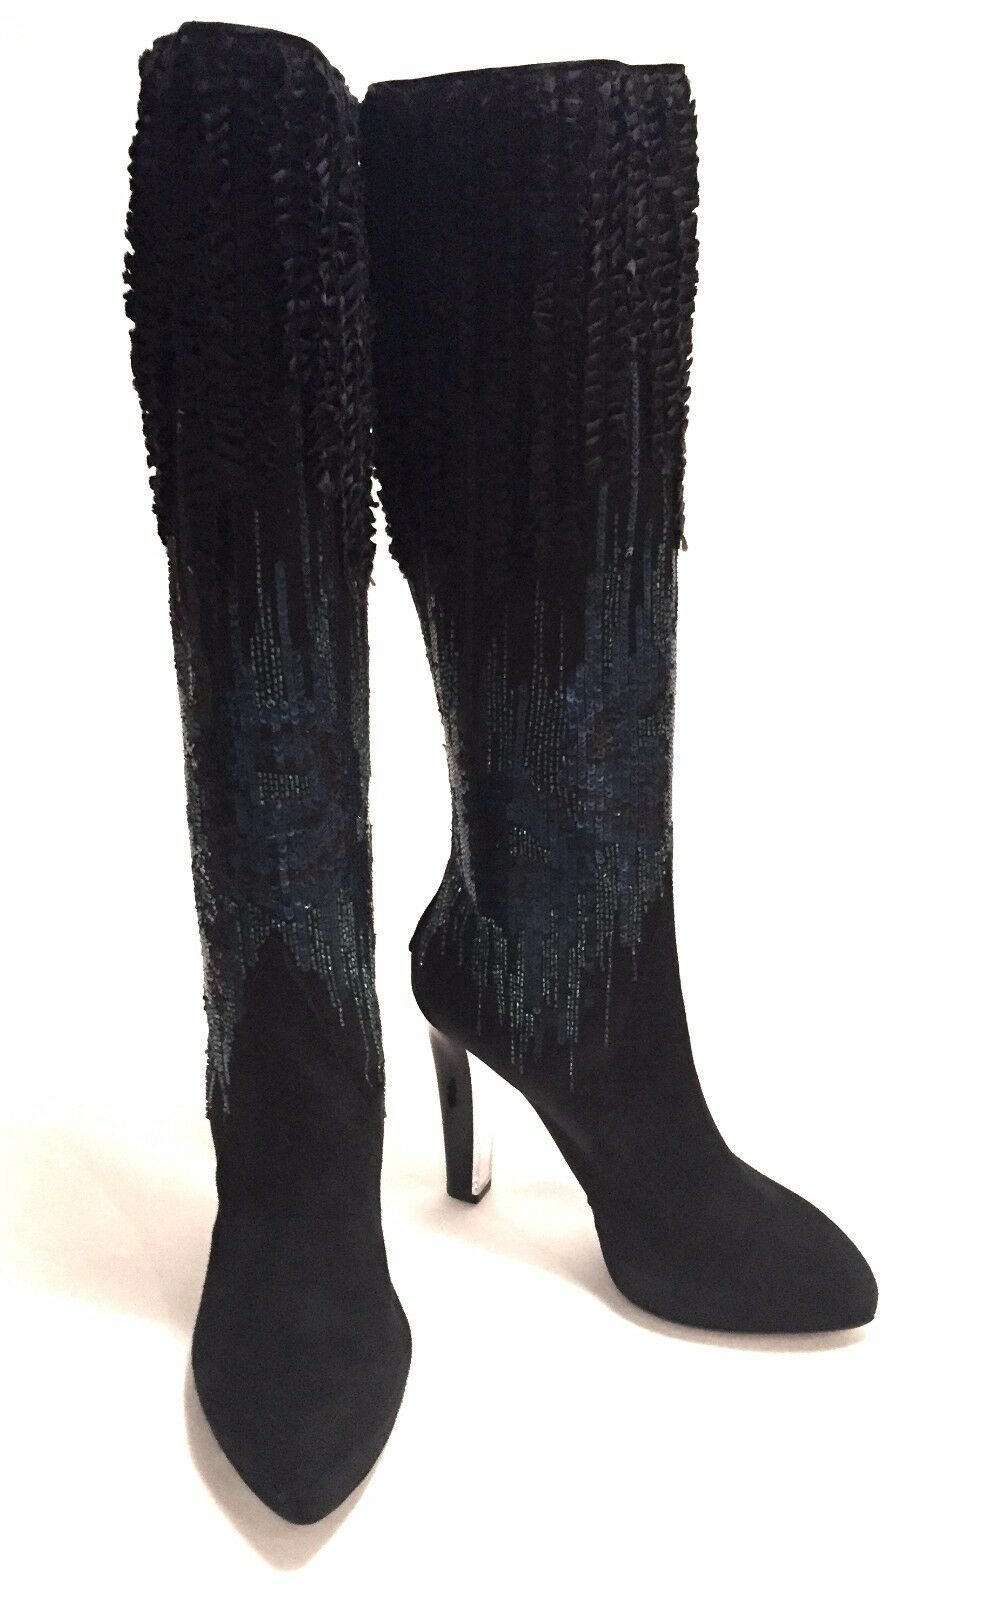 Rene Caovilla Boots Platform Ankle Suede Heel Shoes sz:36Eur  6-US made in Italy